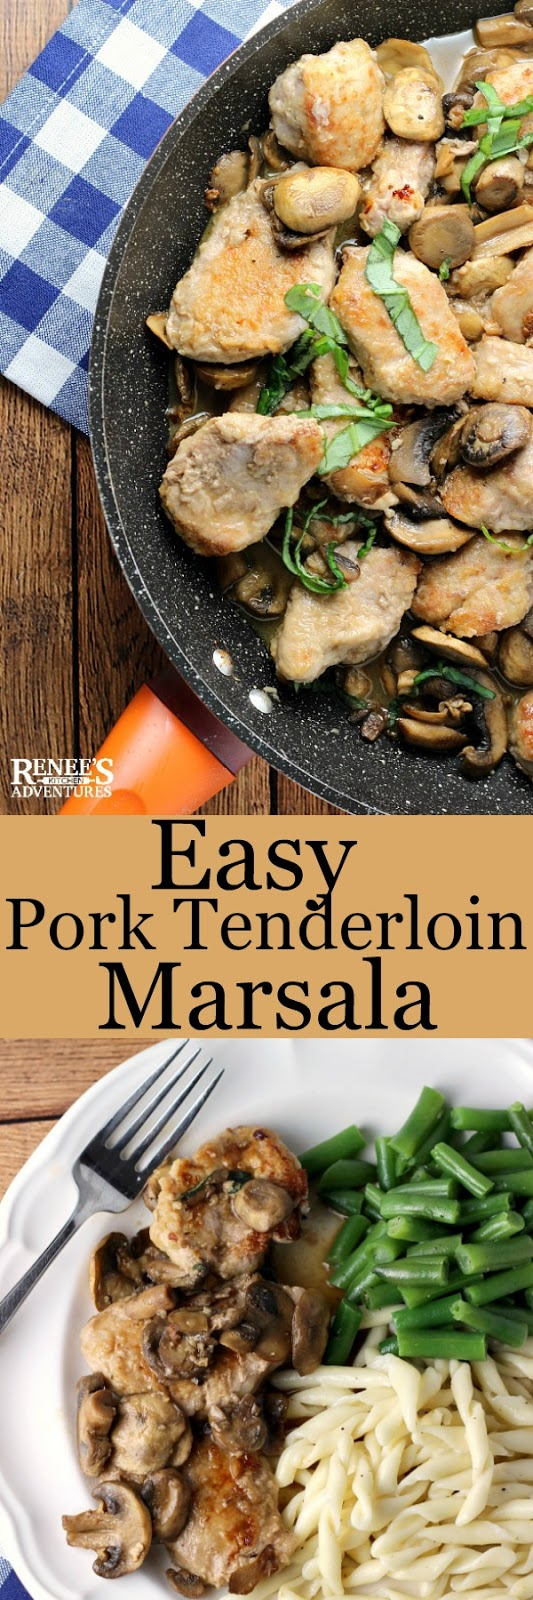 Easy Pork Tenderloin Marsala pin for Pinterest with two images of the prepared dish with recipe title